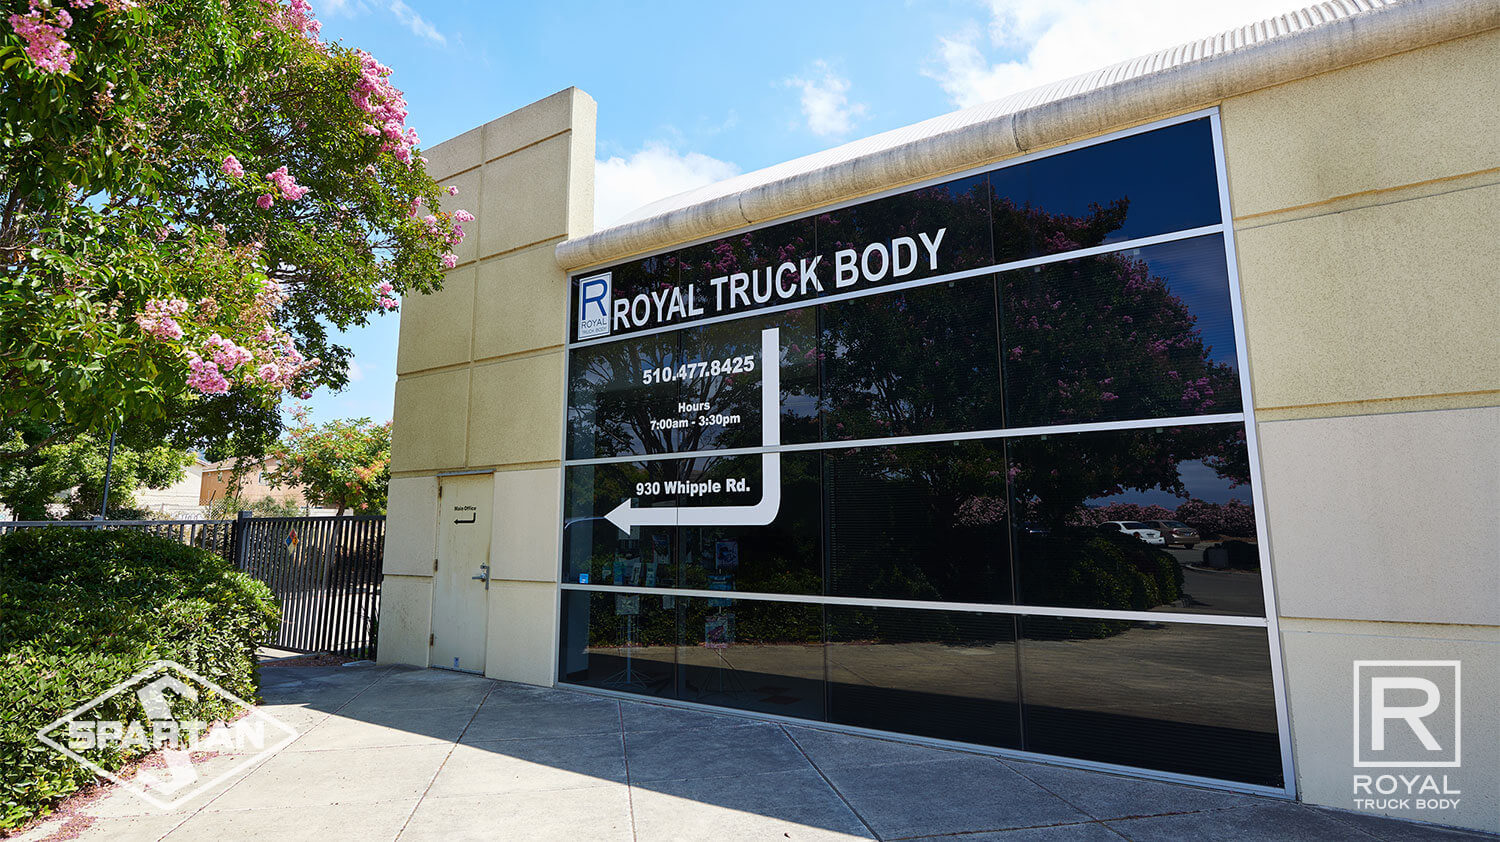 Union City, California Royal Truck Body facility